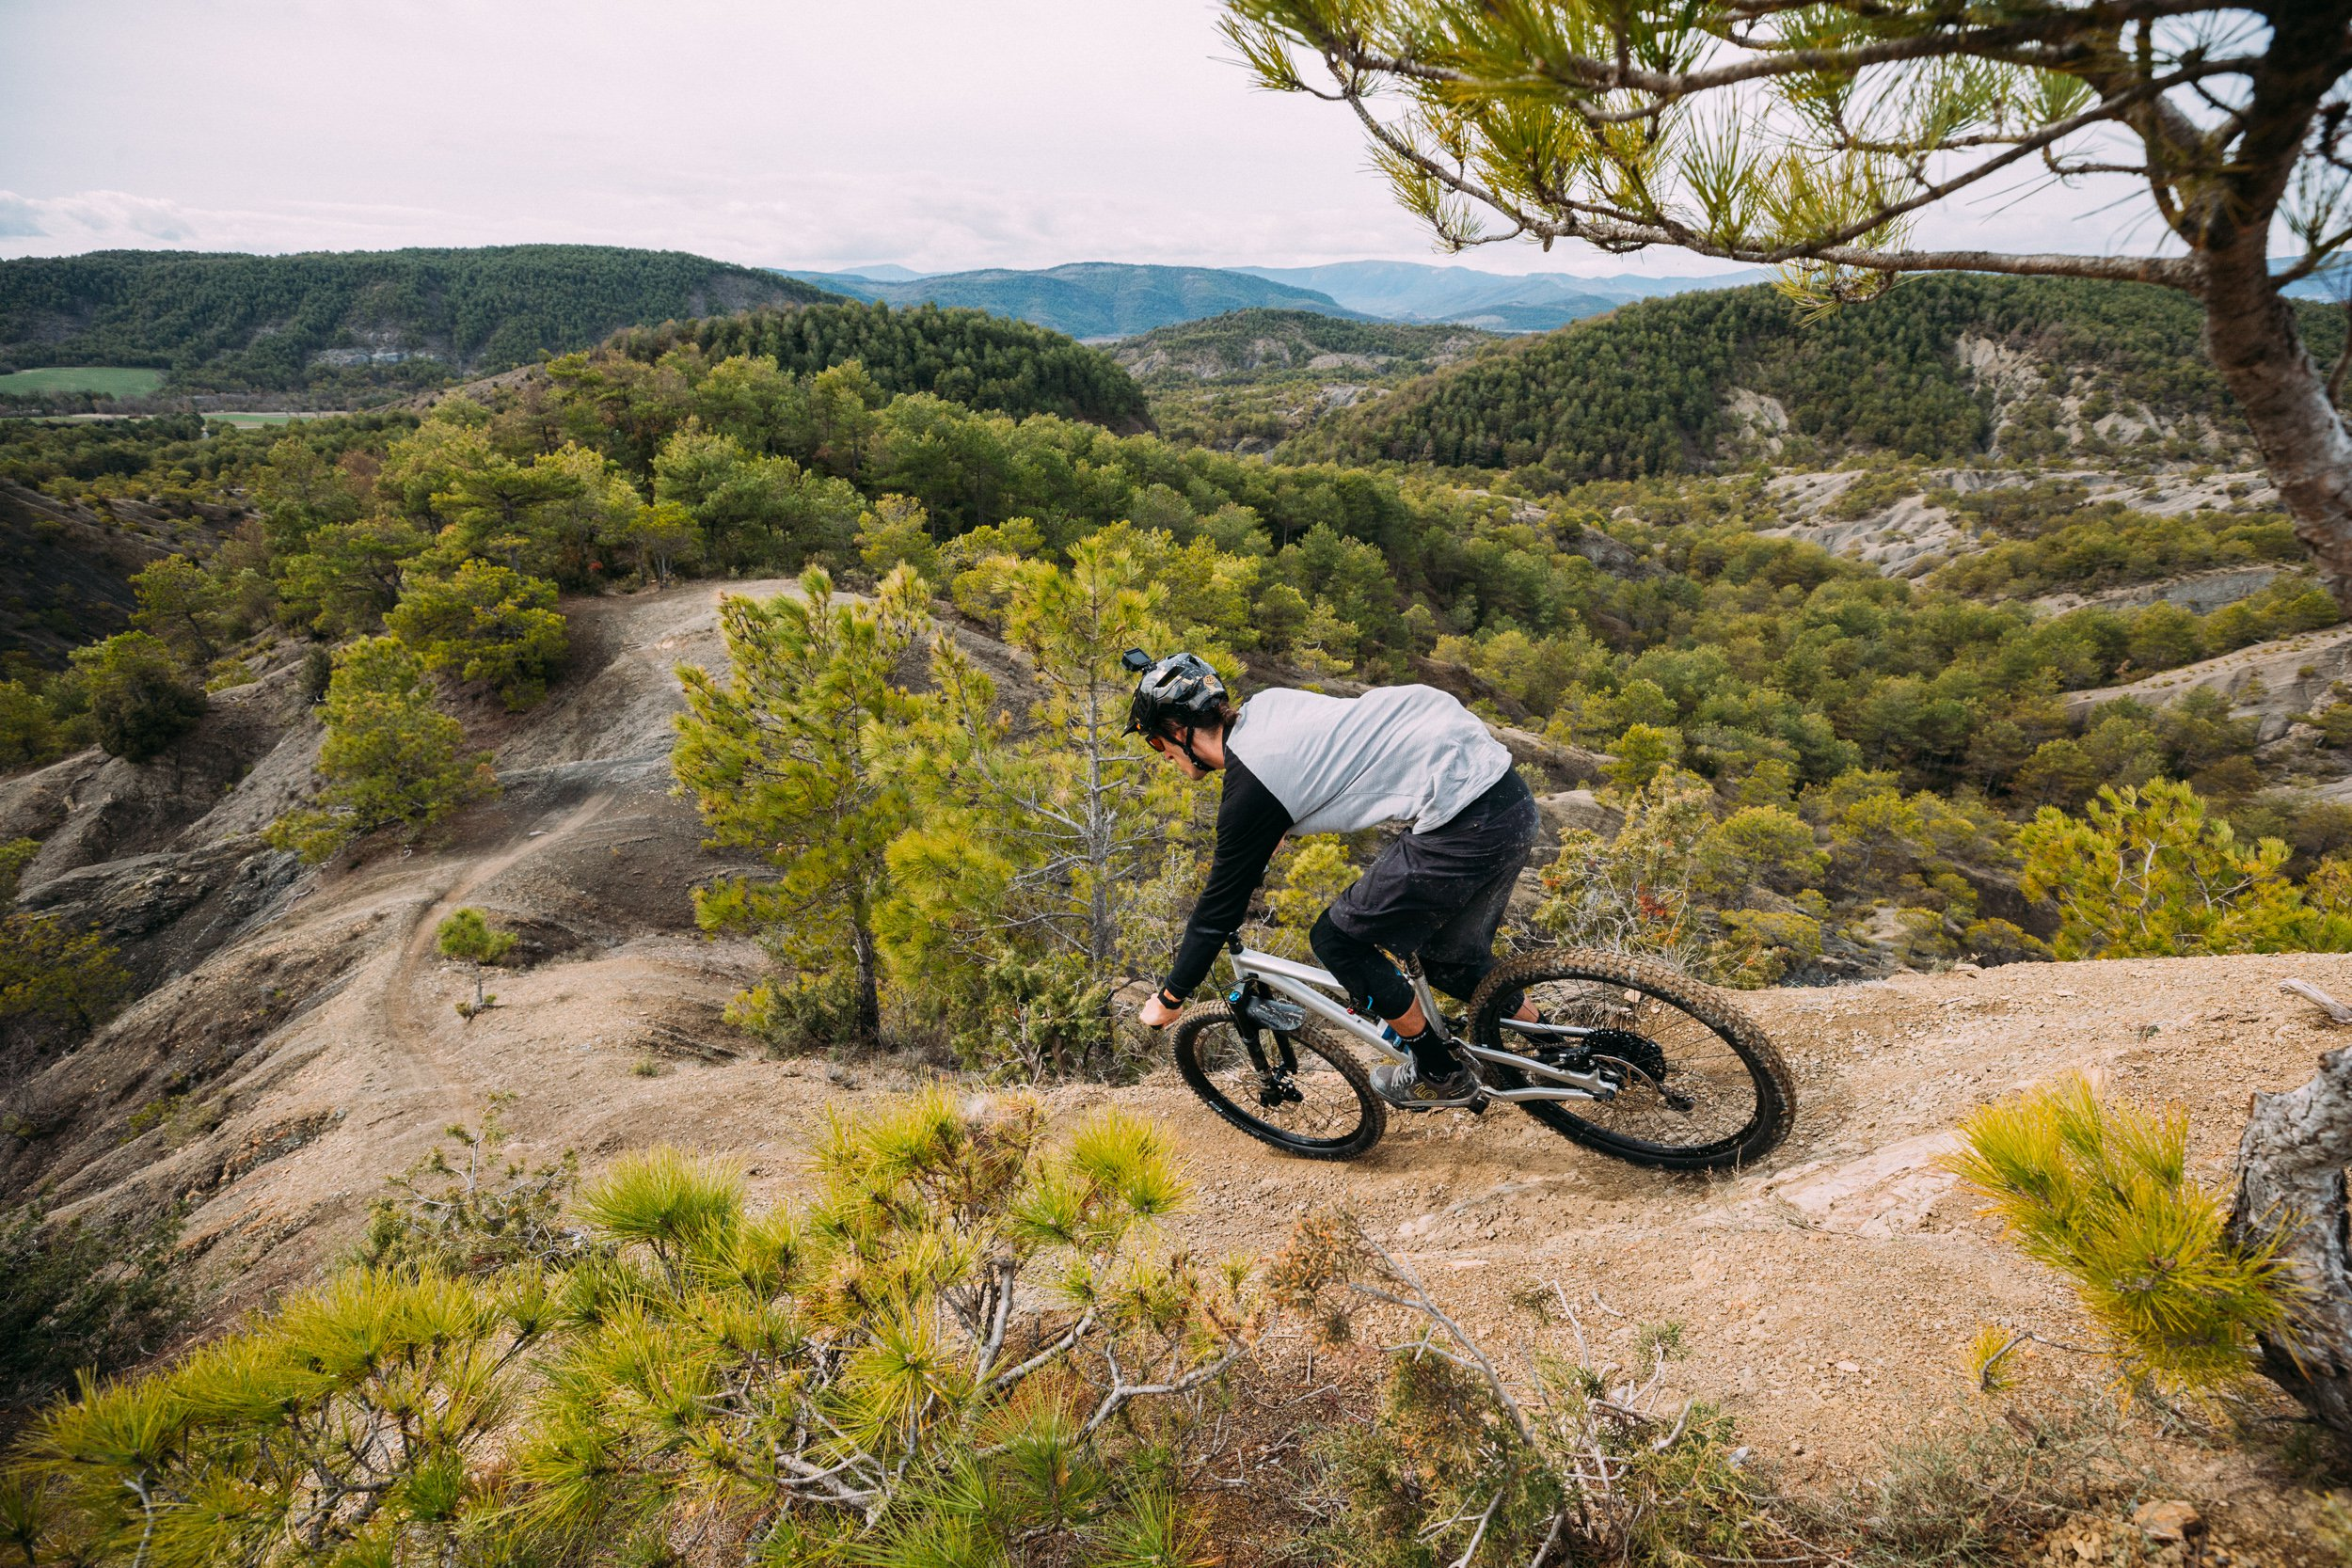 AJ Barlas riding the 2018 Specialized Stumpjumper Evo 29 in Spain